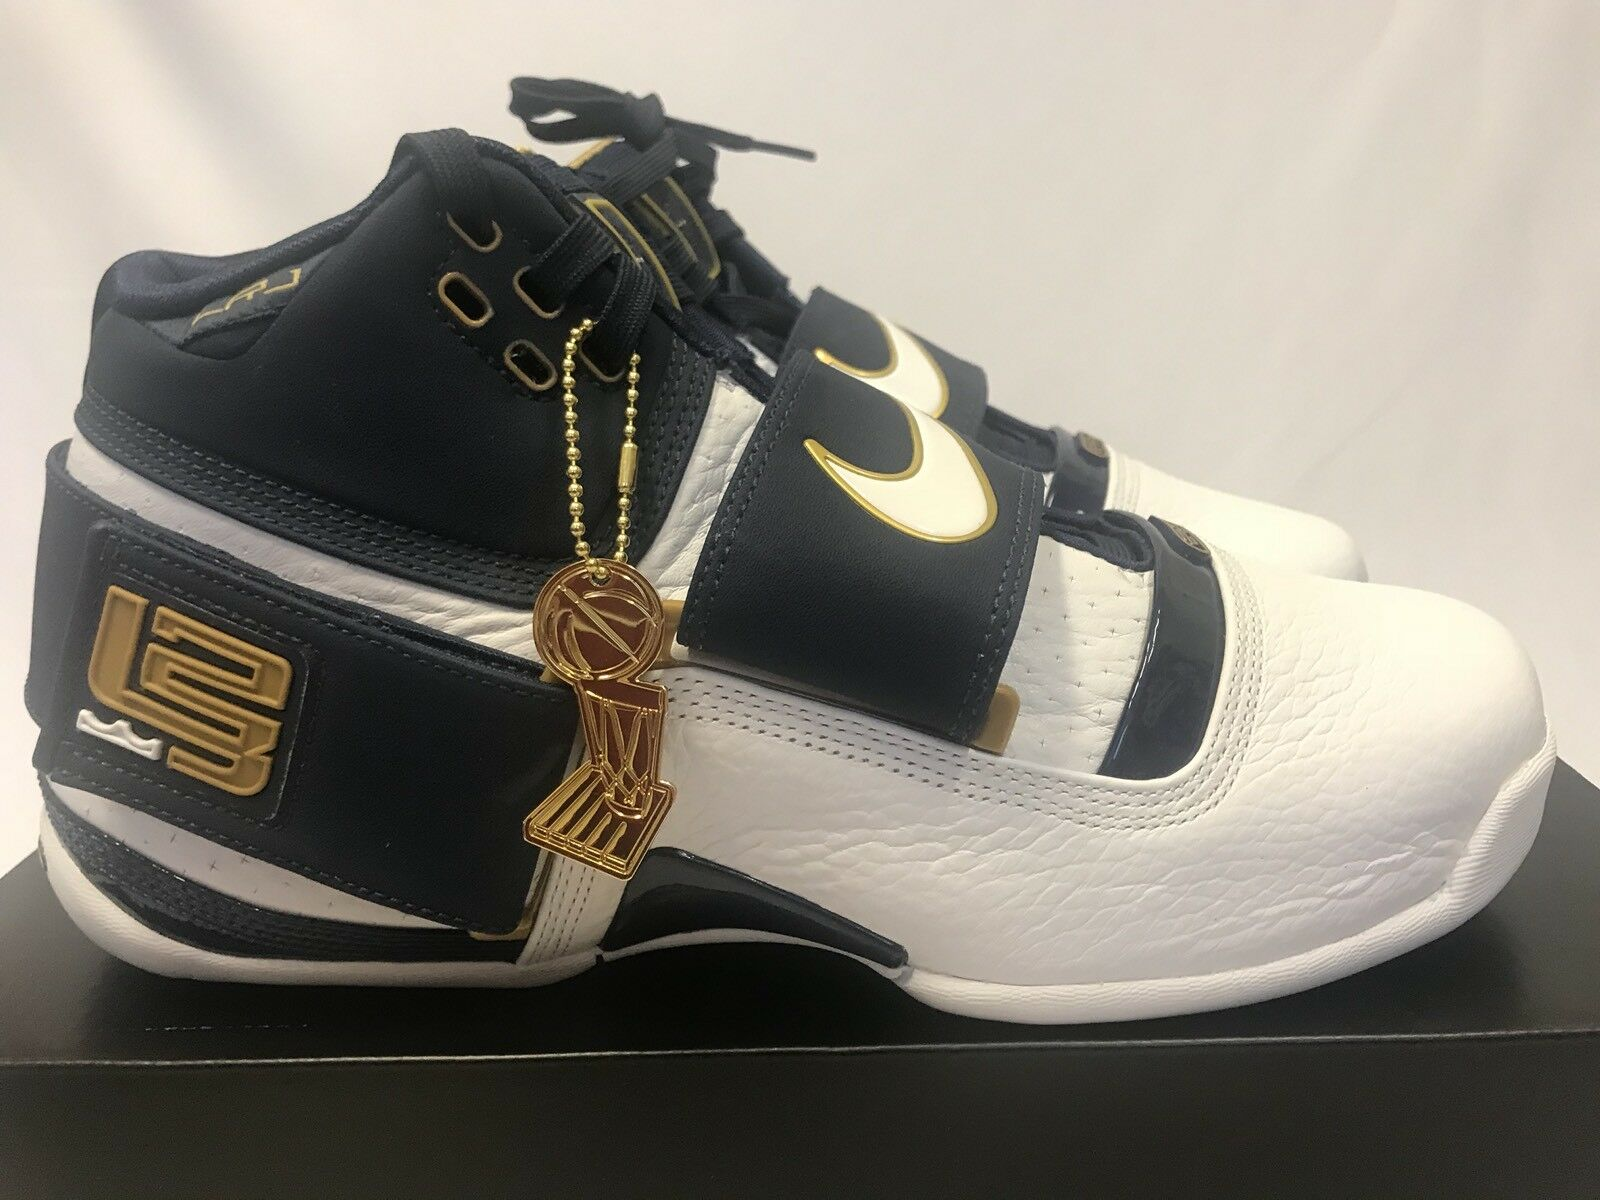 Nike Zoom LeBron Soldier 1 25 Straight Comfortable New shoes for men and women, limited time discount